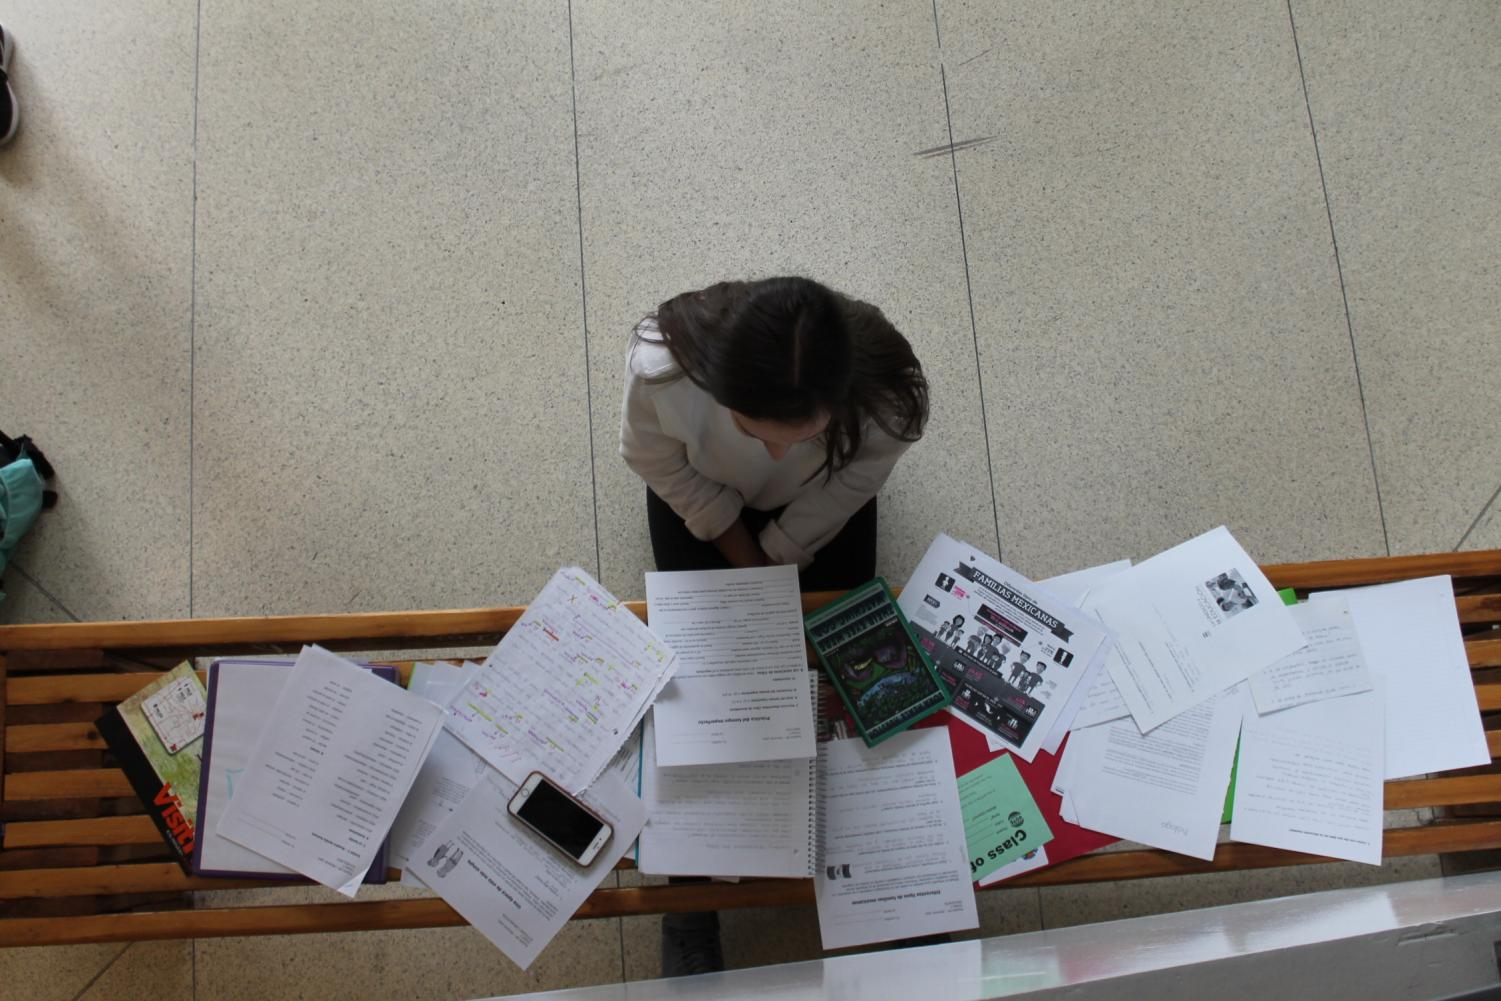 Senior Caroline Shabet reads over all of her papers from various classes.